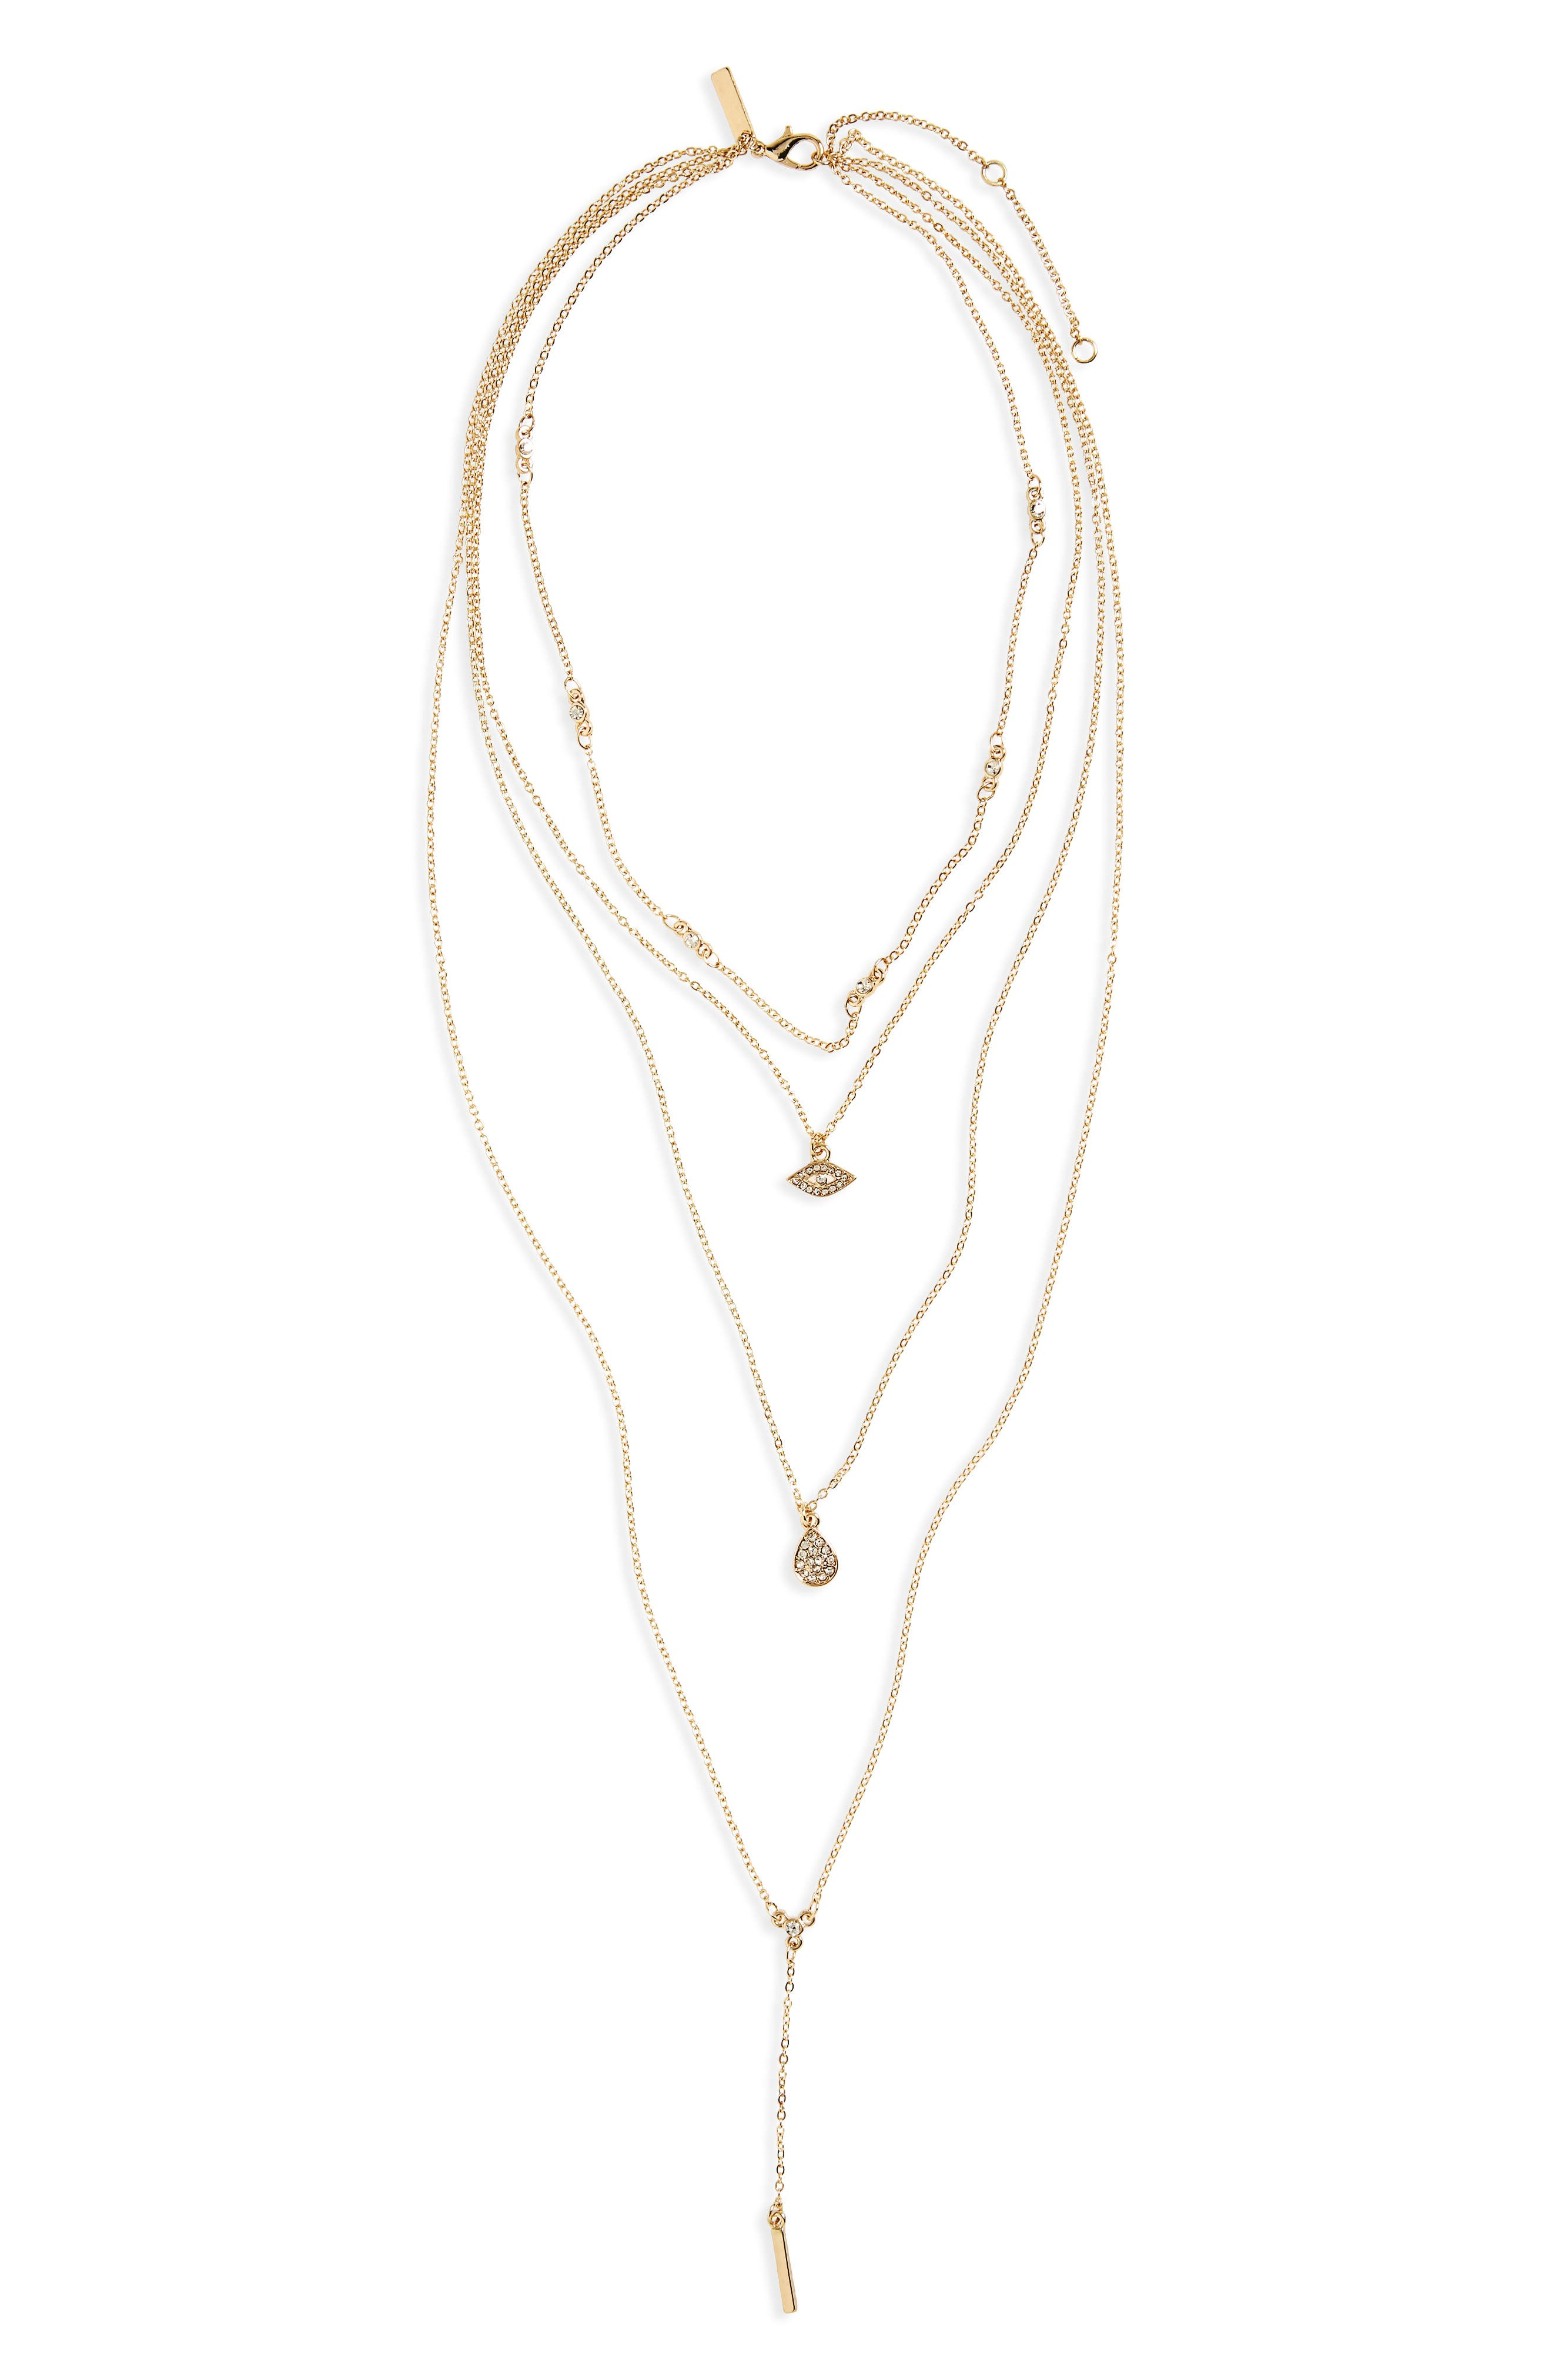 Topshop Stone Eye Multistrand Necklace